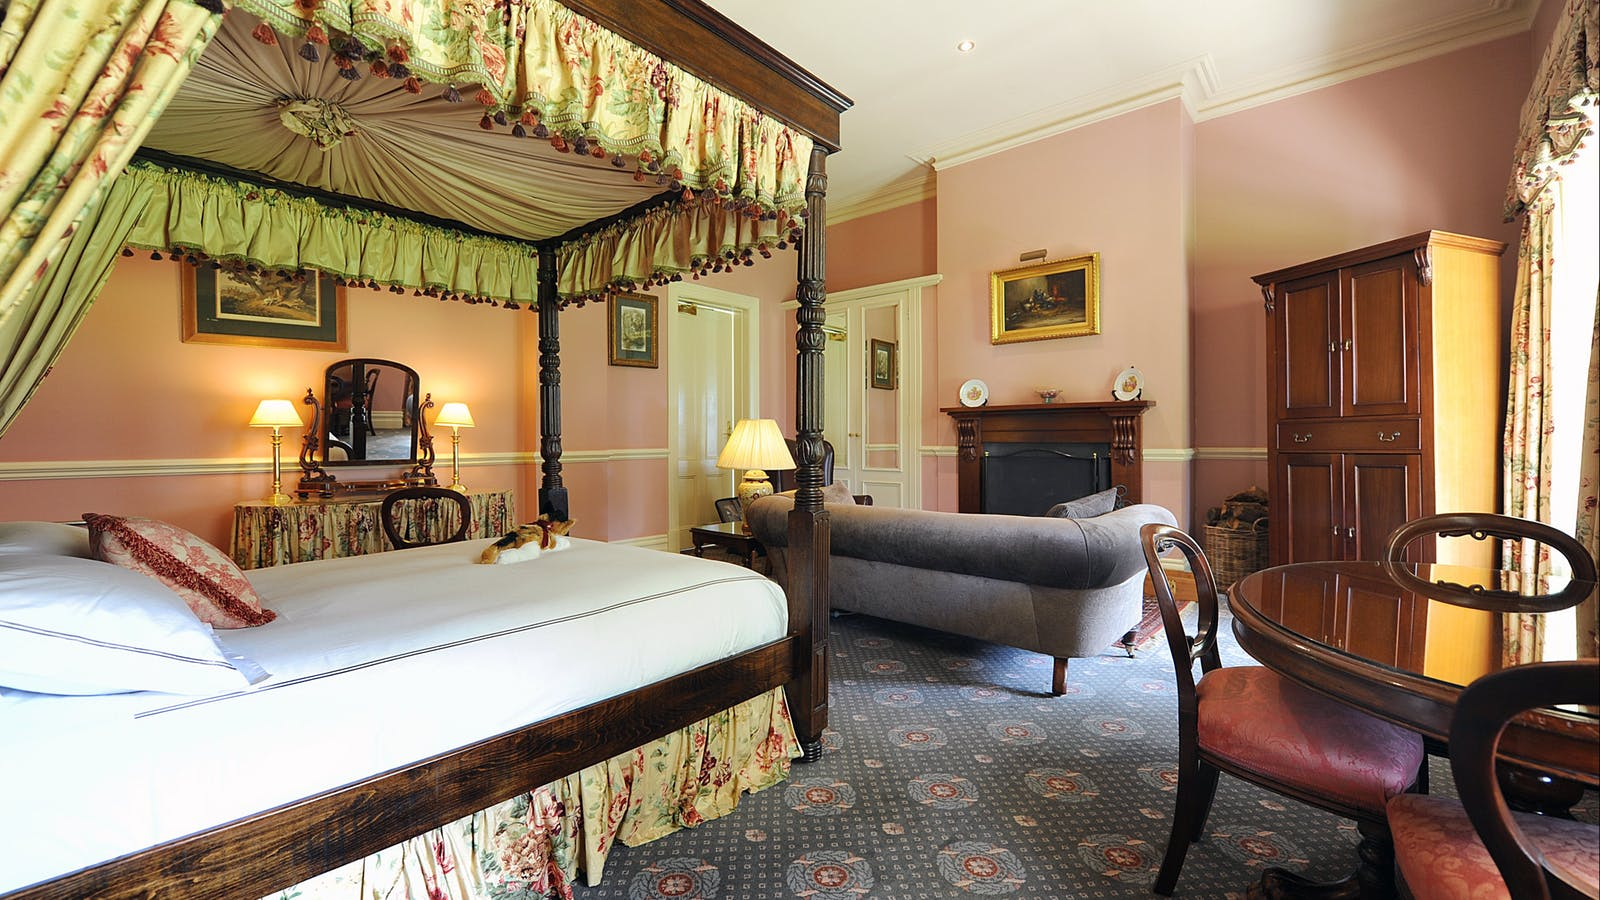 Stable Suite with open log fire and an antique four poster bed